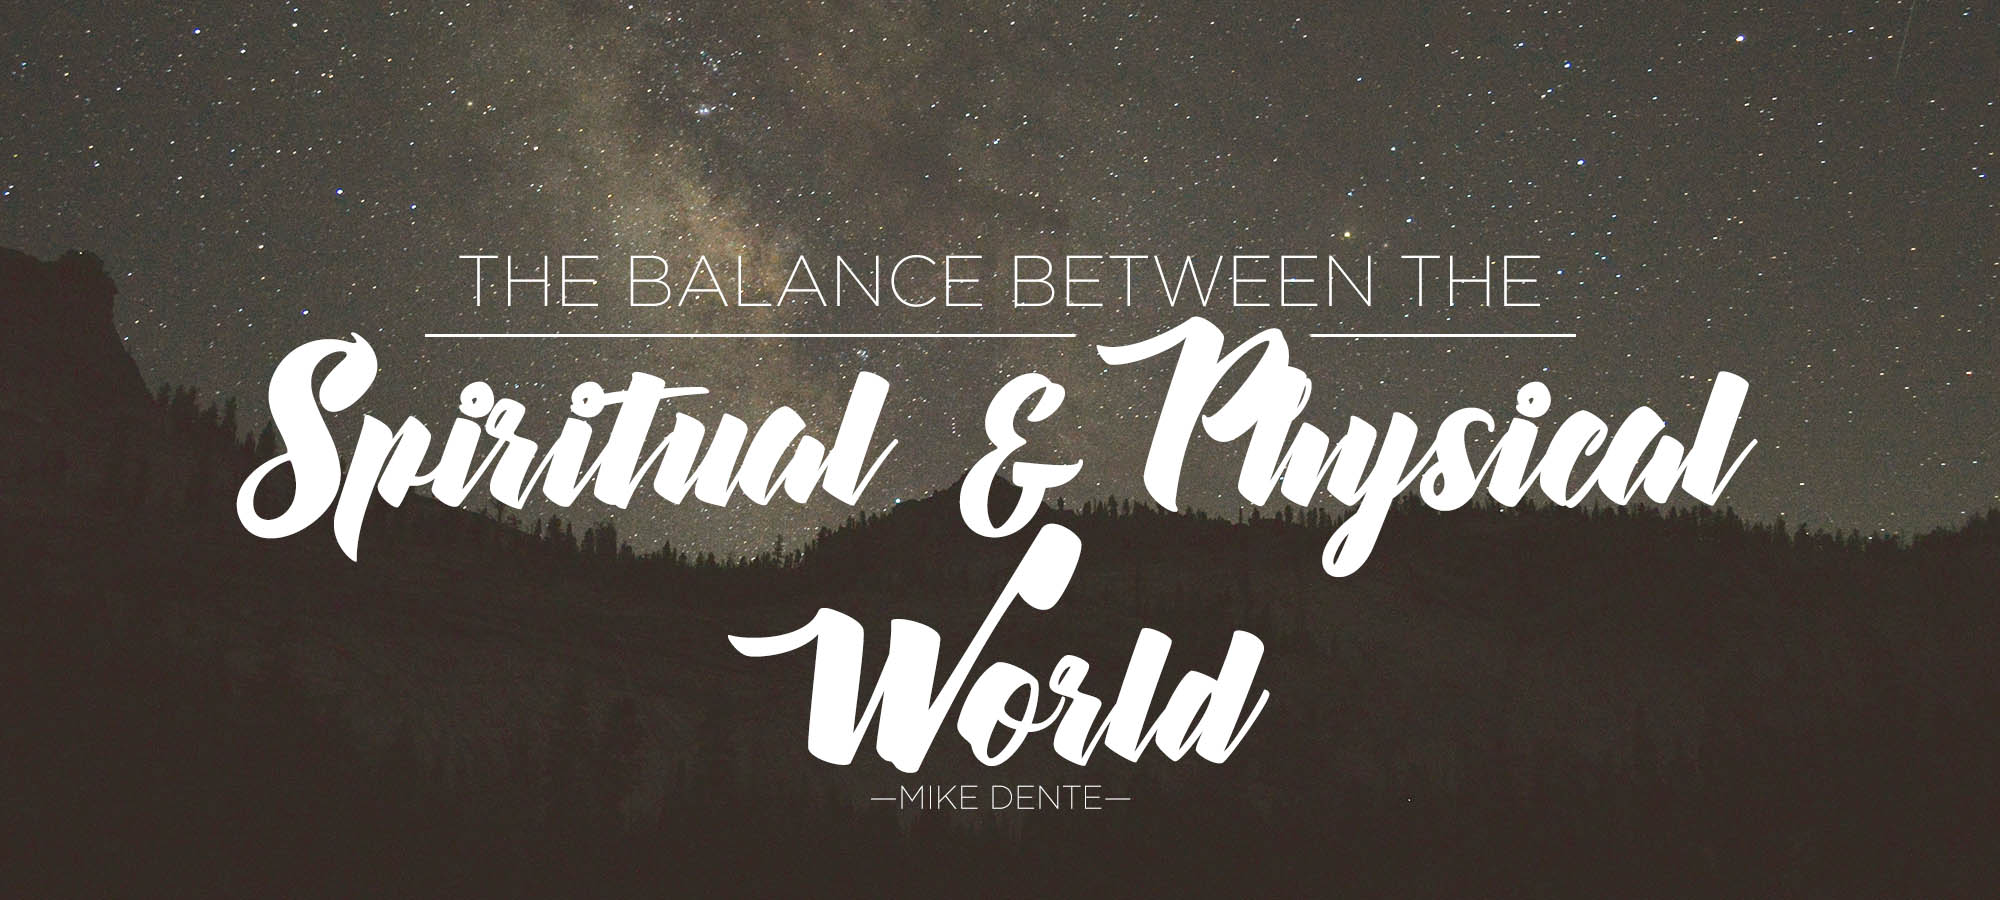 The-Balance-Between-the-Spiritual-and-Physical-World_170811_062529.jpg